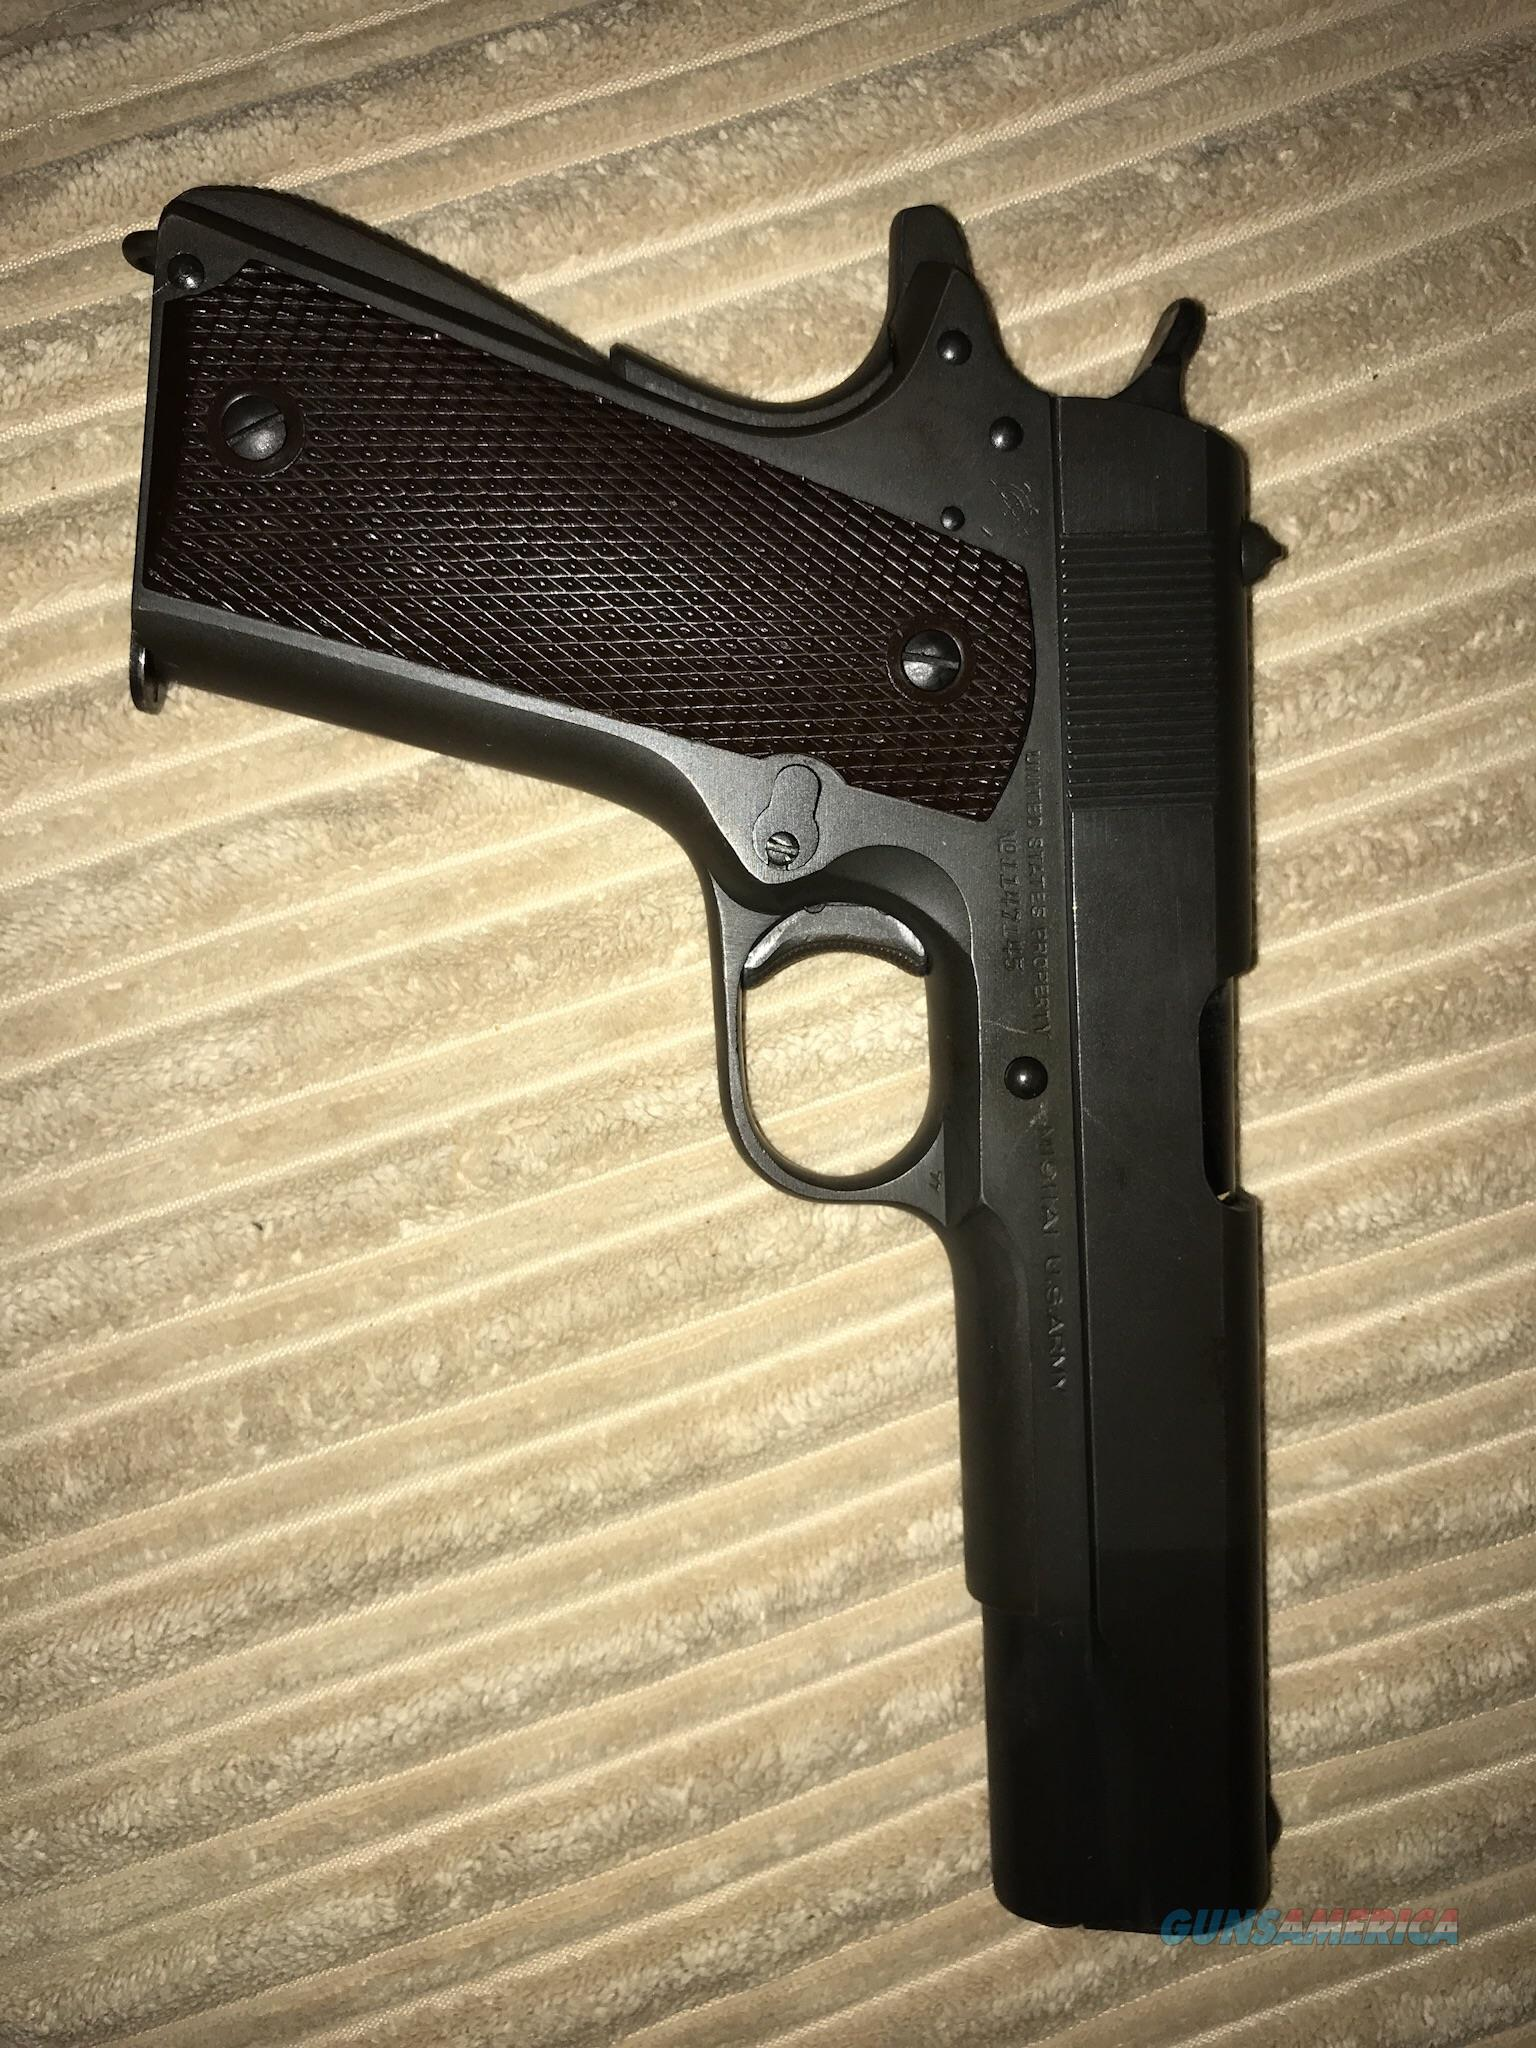 Colt 1911 , WWll issue parkerized finish, pretty good shape, have a mag but not original WWll issue mag.  Guns > Pistols > Collectible Pistols